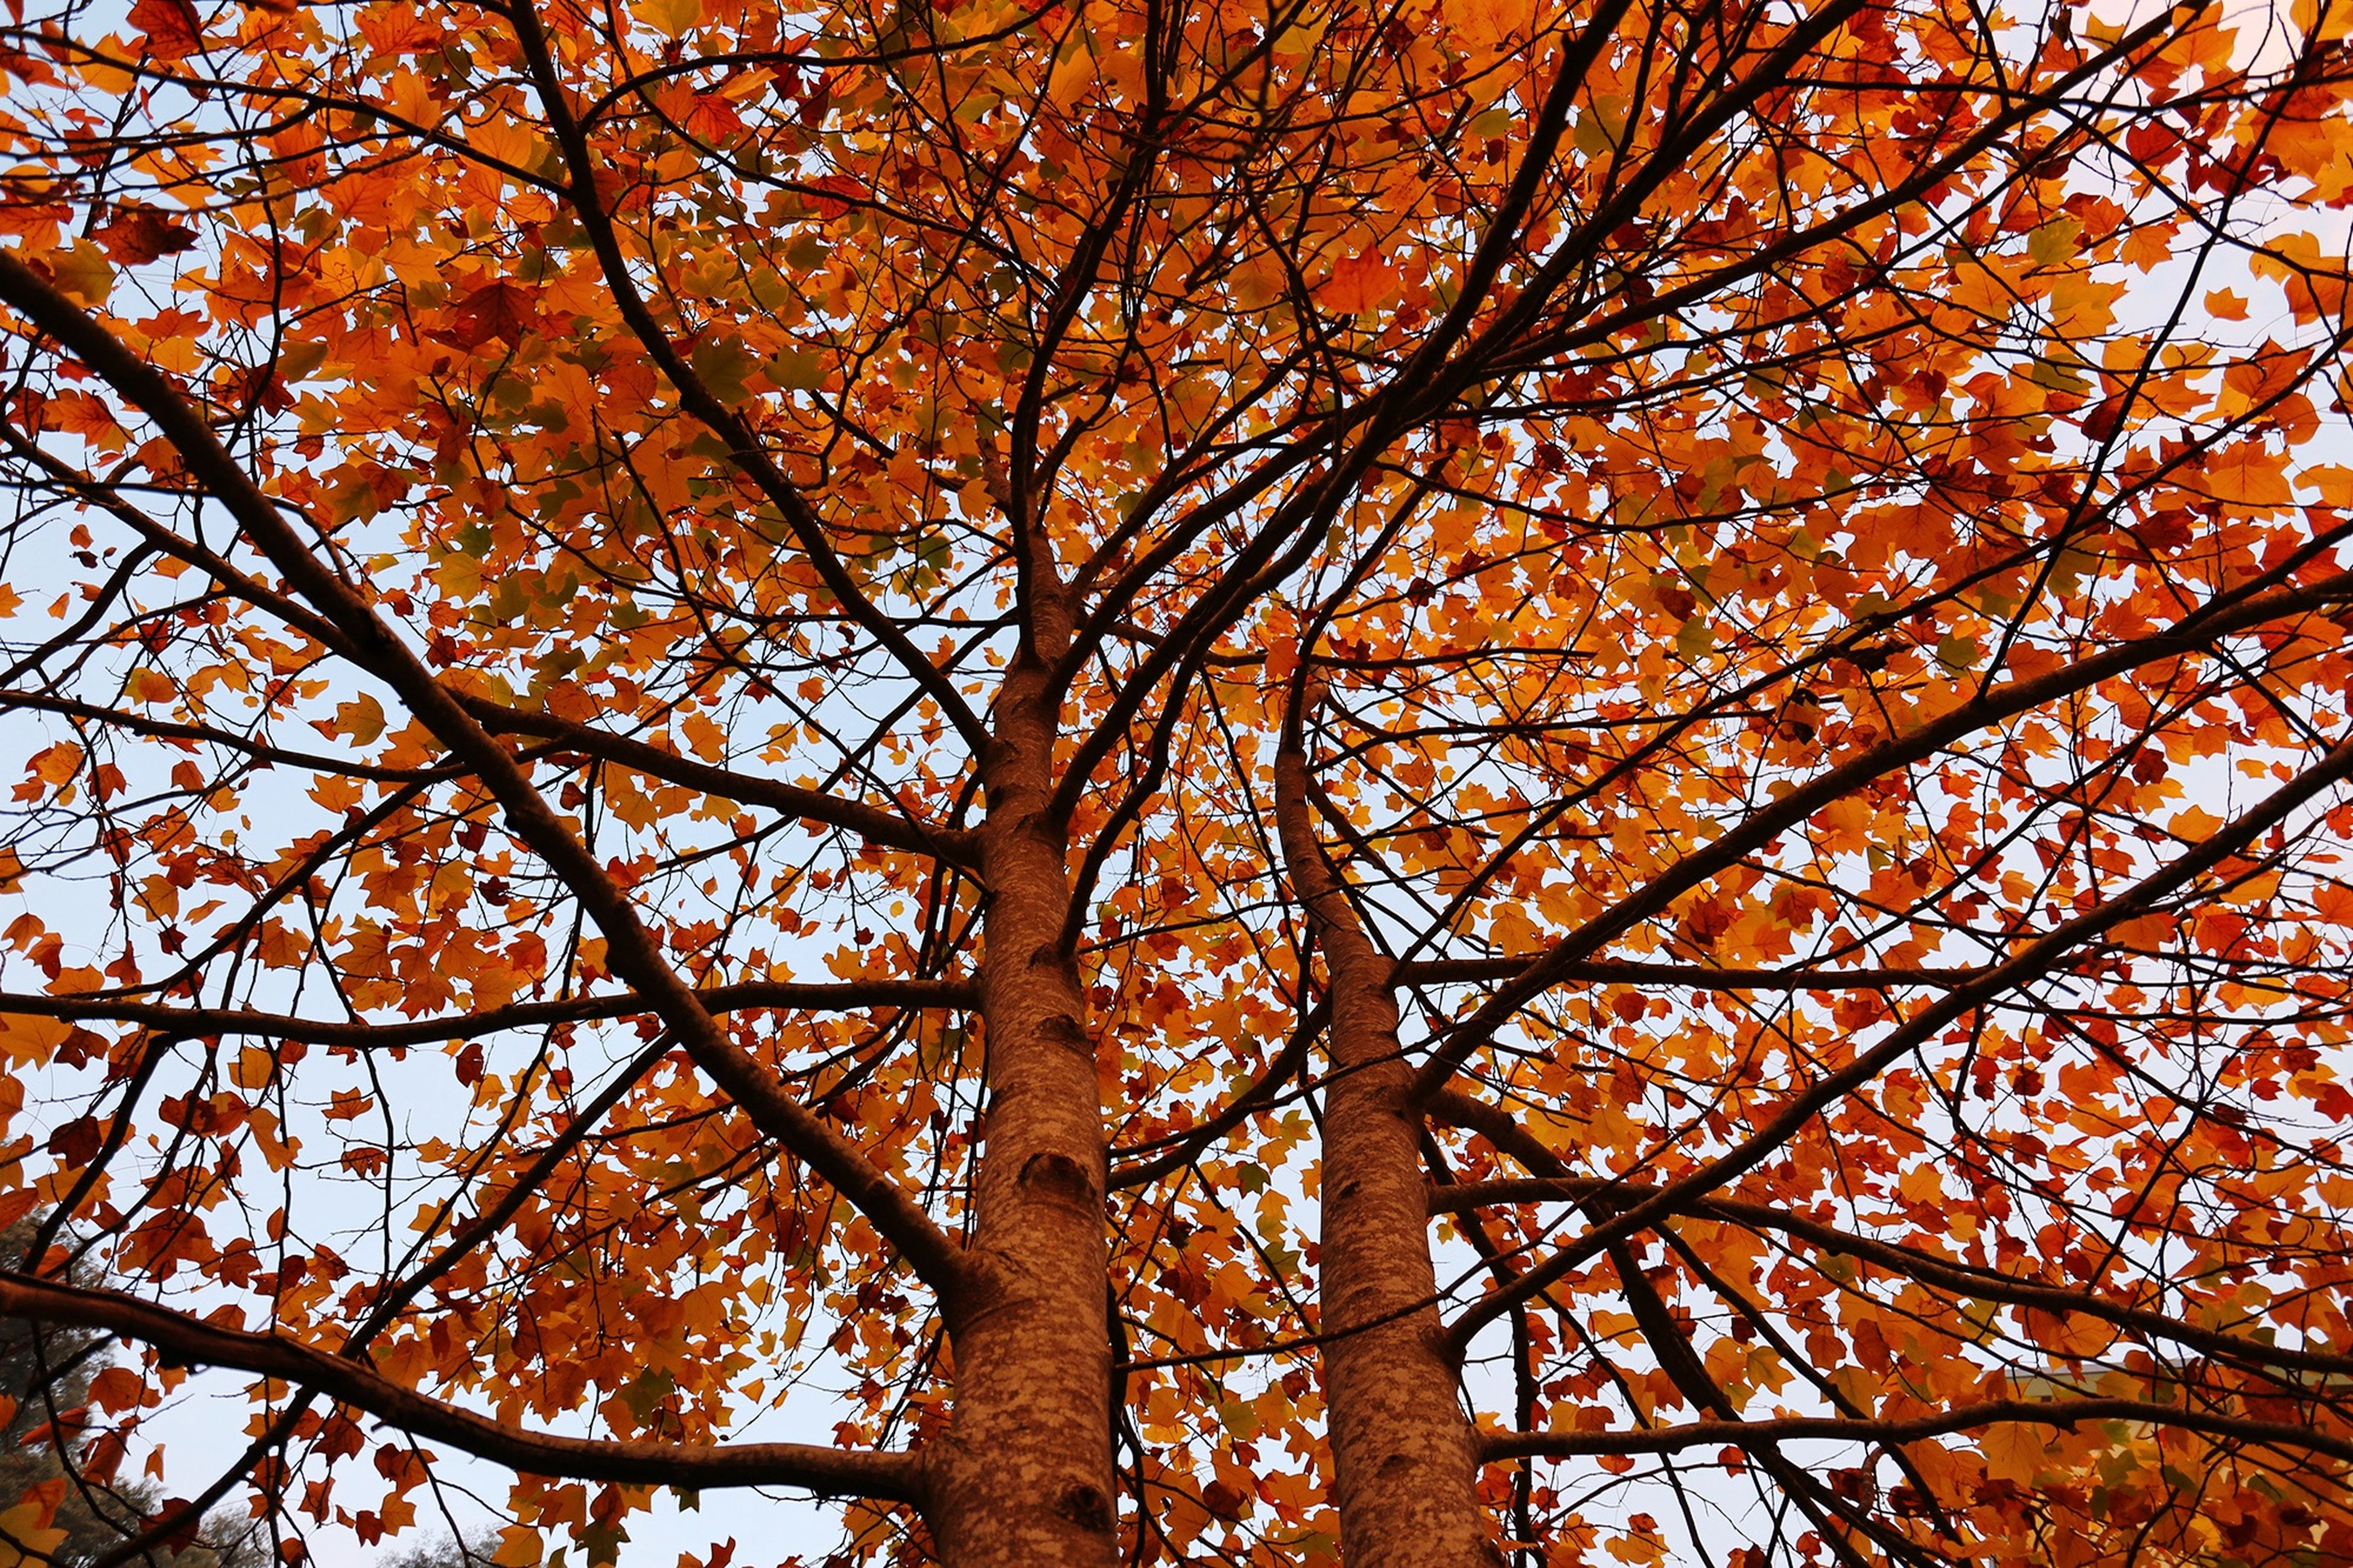 tree, autumn, change, branch, season, low angle view, orange color, growth, beauty in nature, nature, tranquility, leaf, full frame, backgrounds, scenics, yellow, day, outdoors, vibrant color, no people